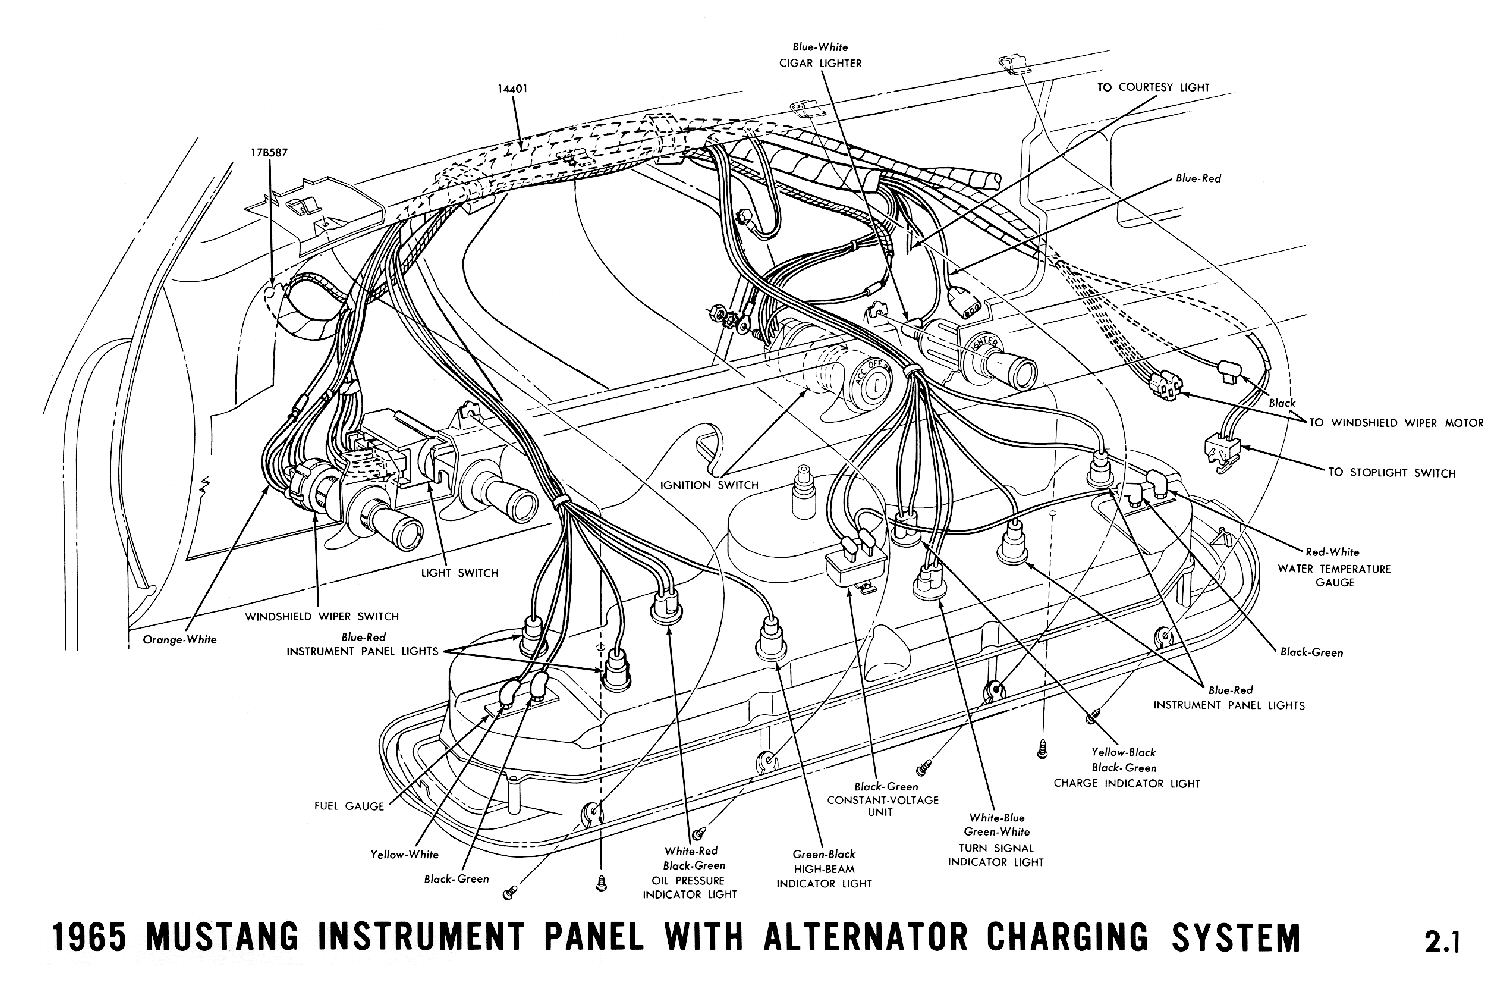 1965 Mustang Wiring Diagrams on 1968 corvette wiper motor wiring diagram